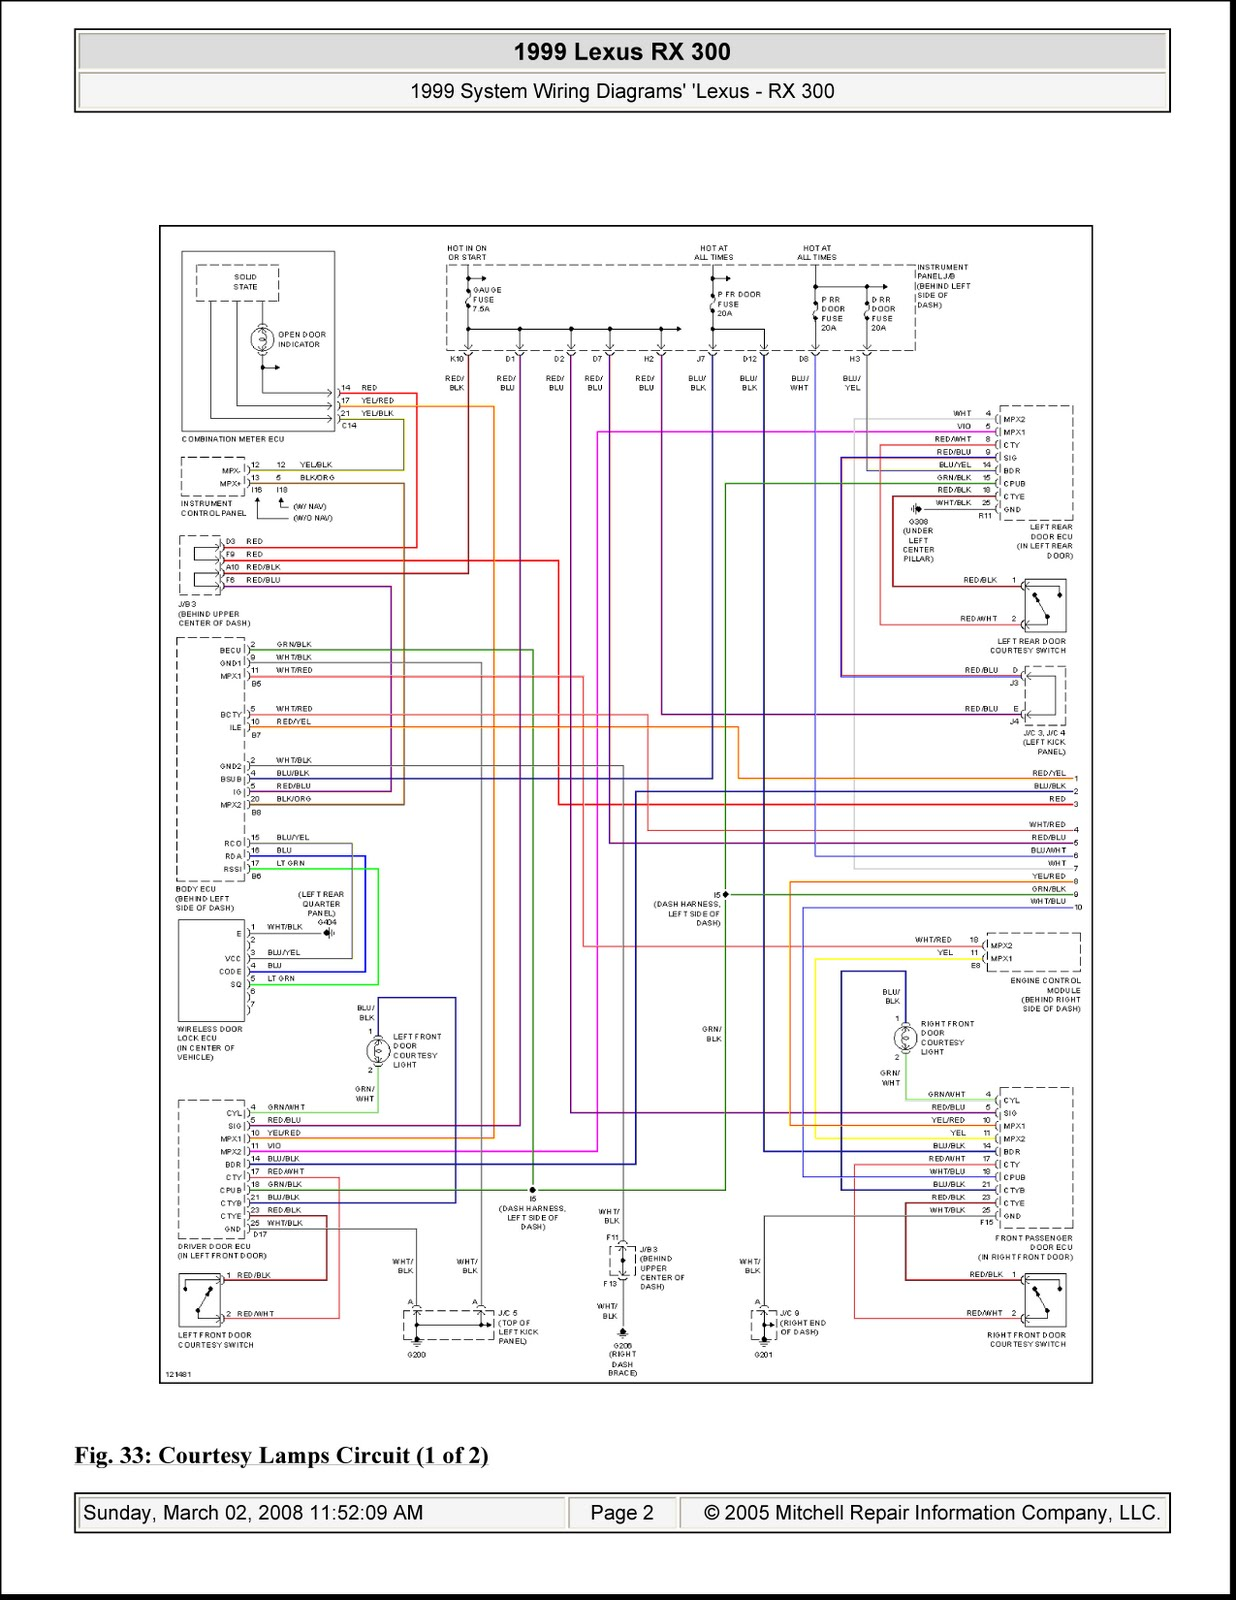 1999 Lexus Rx 300 System Wiring on 2003 chevy factory radio wiring diagram